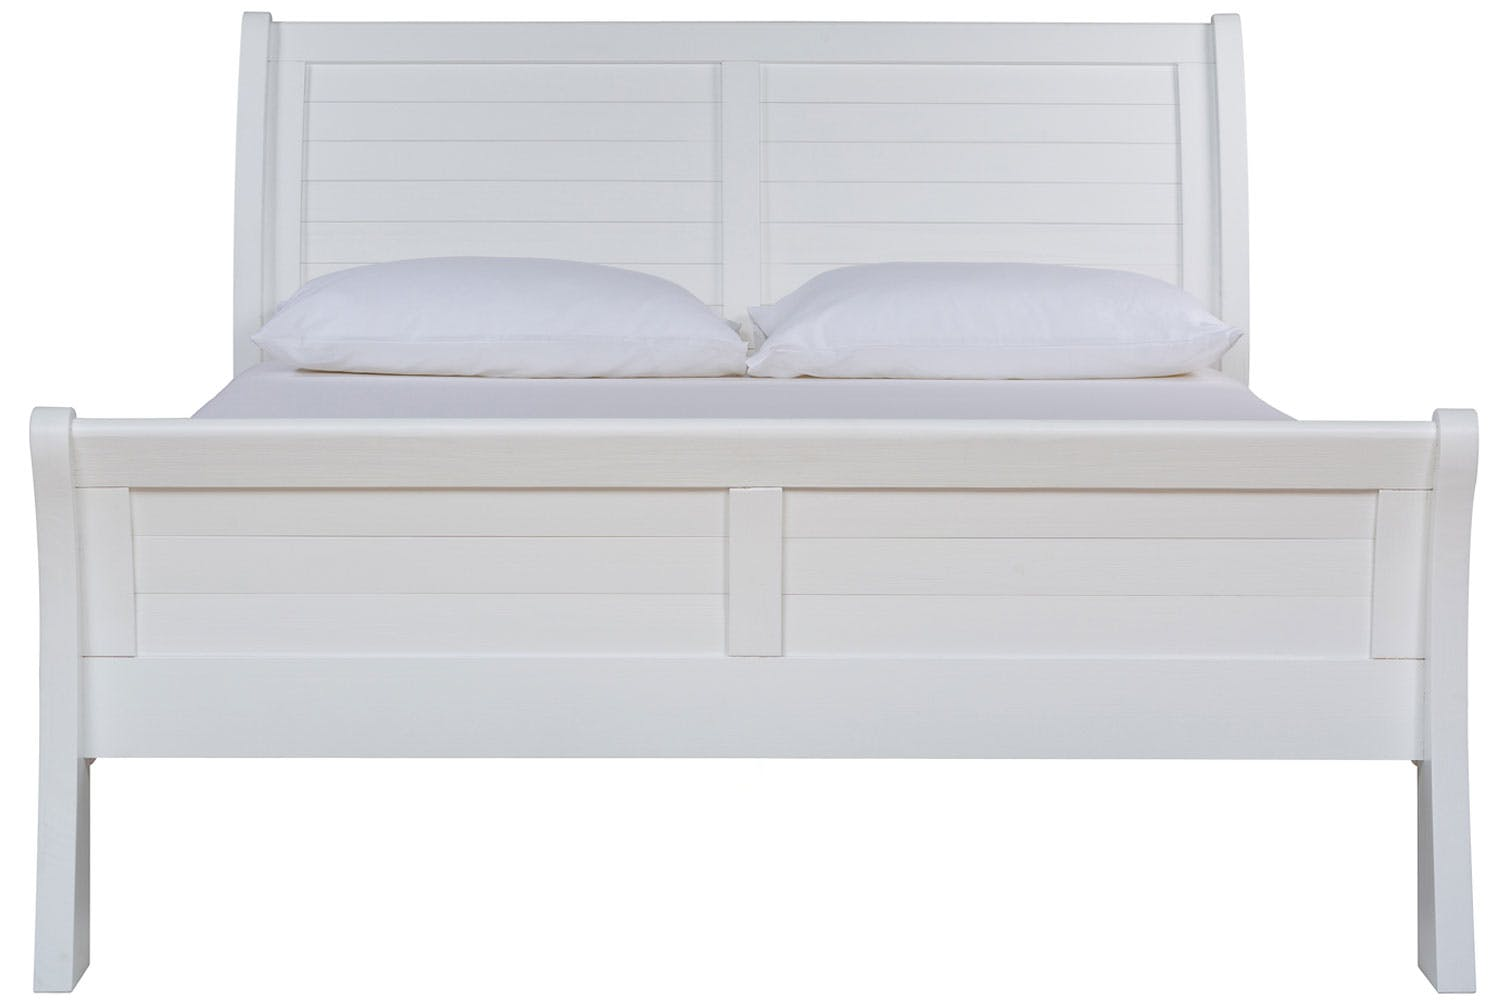 gemstone double bed frame 4ft6 white - Double Bed Frame